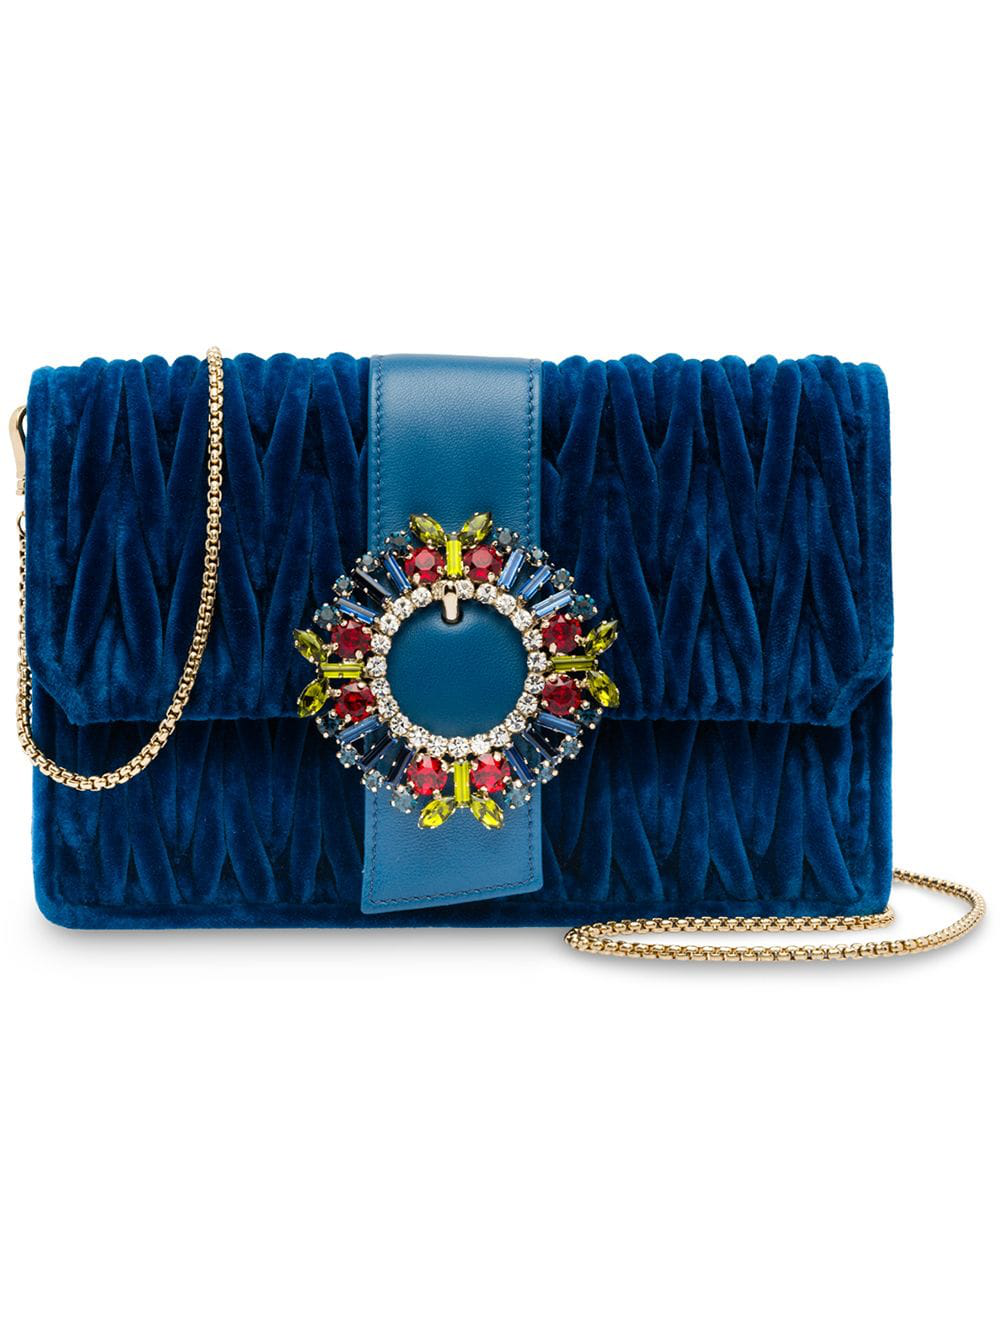 d22195d5bd1 Miu Miu Matelassé Velvet Shoulder Bag - Blue